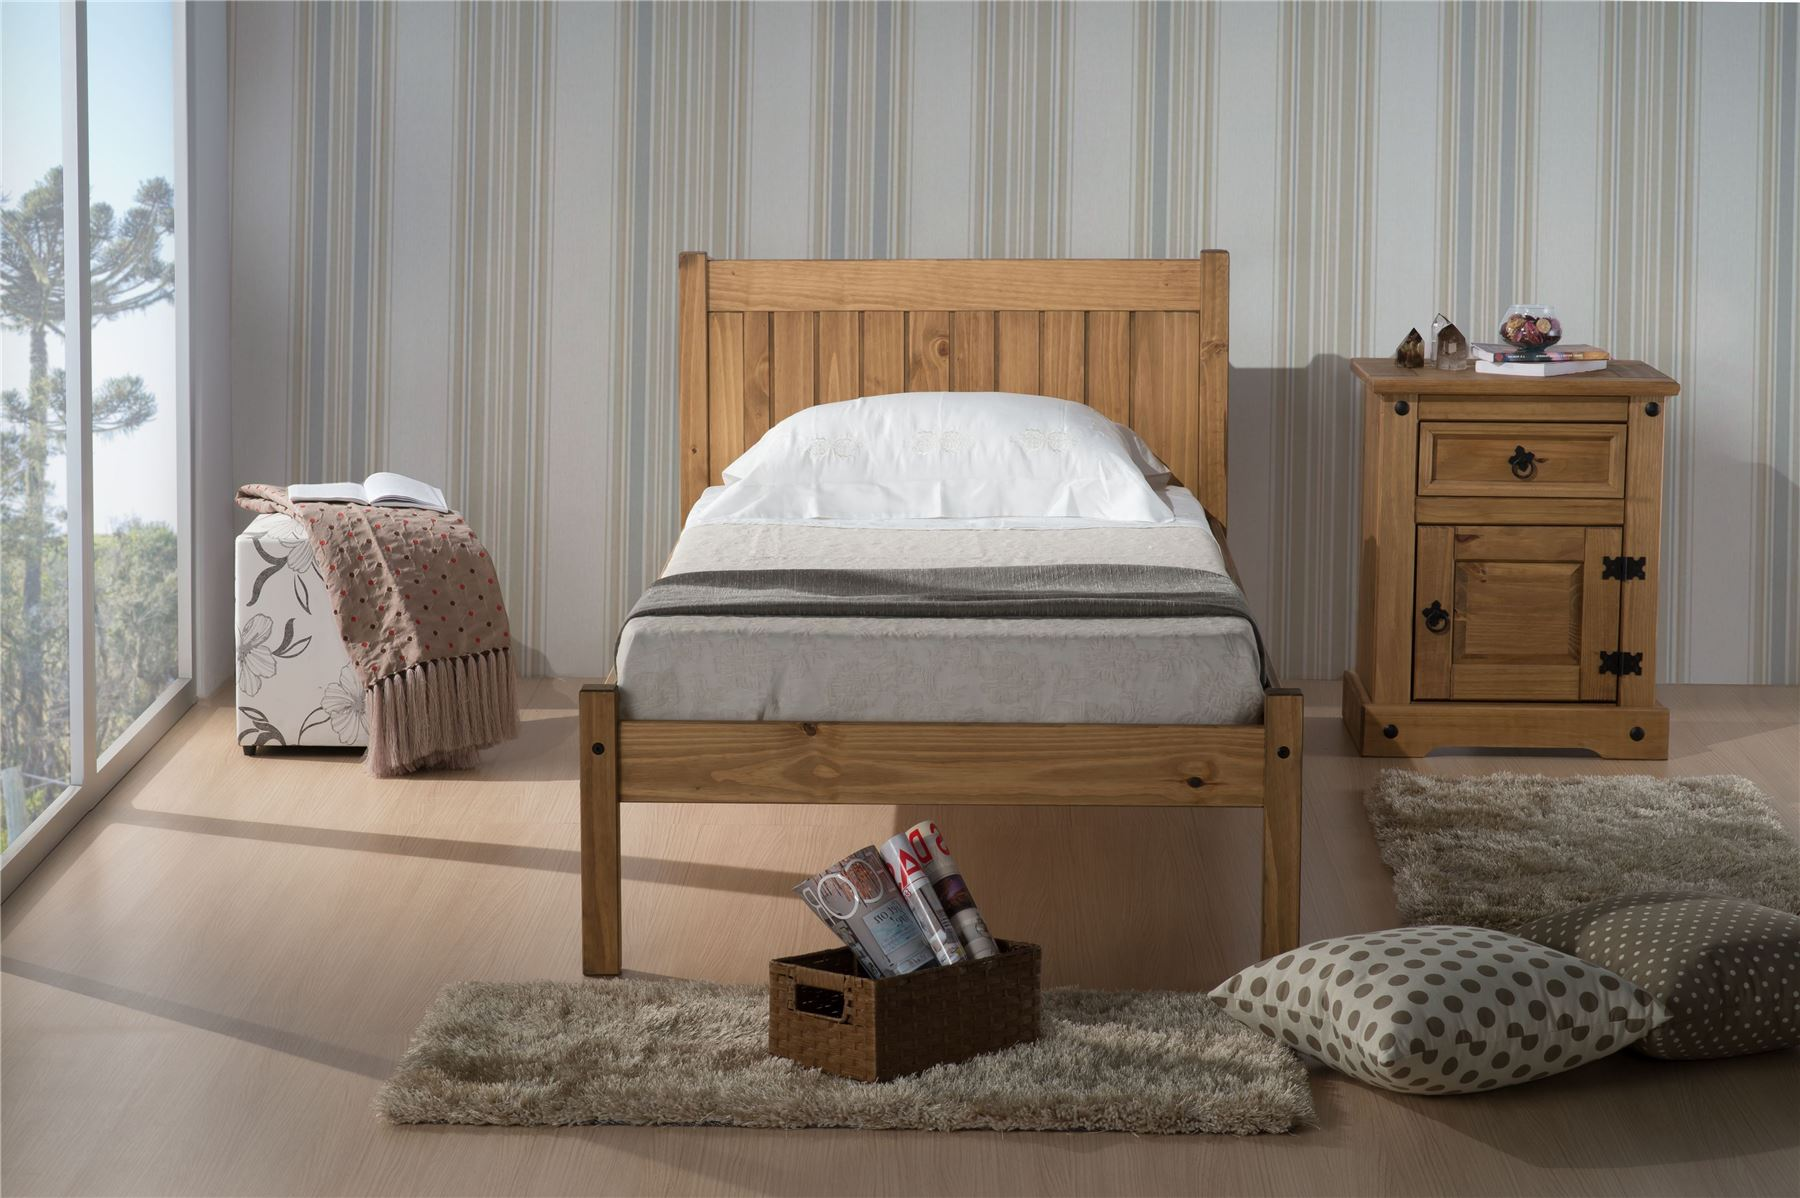 Birlea Corona Mexican Solid Pine Wood Rio 90cm Bedstead 3FT Single bed Frame